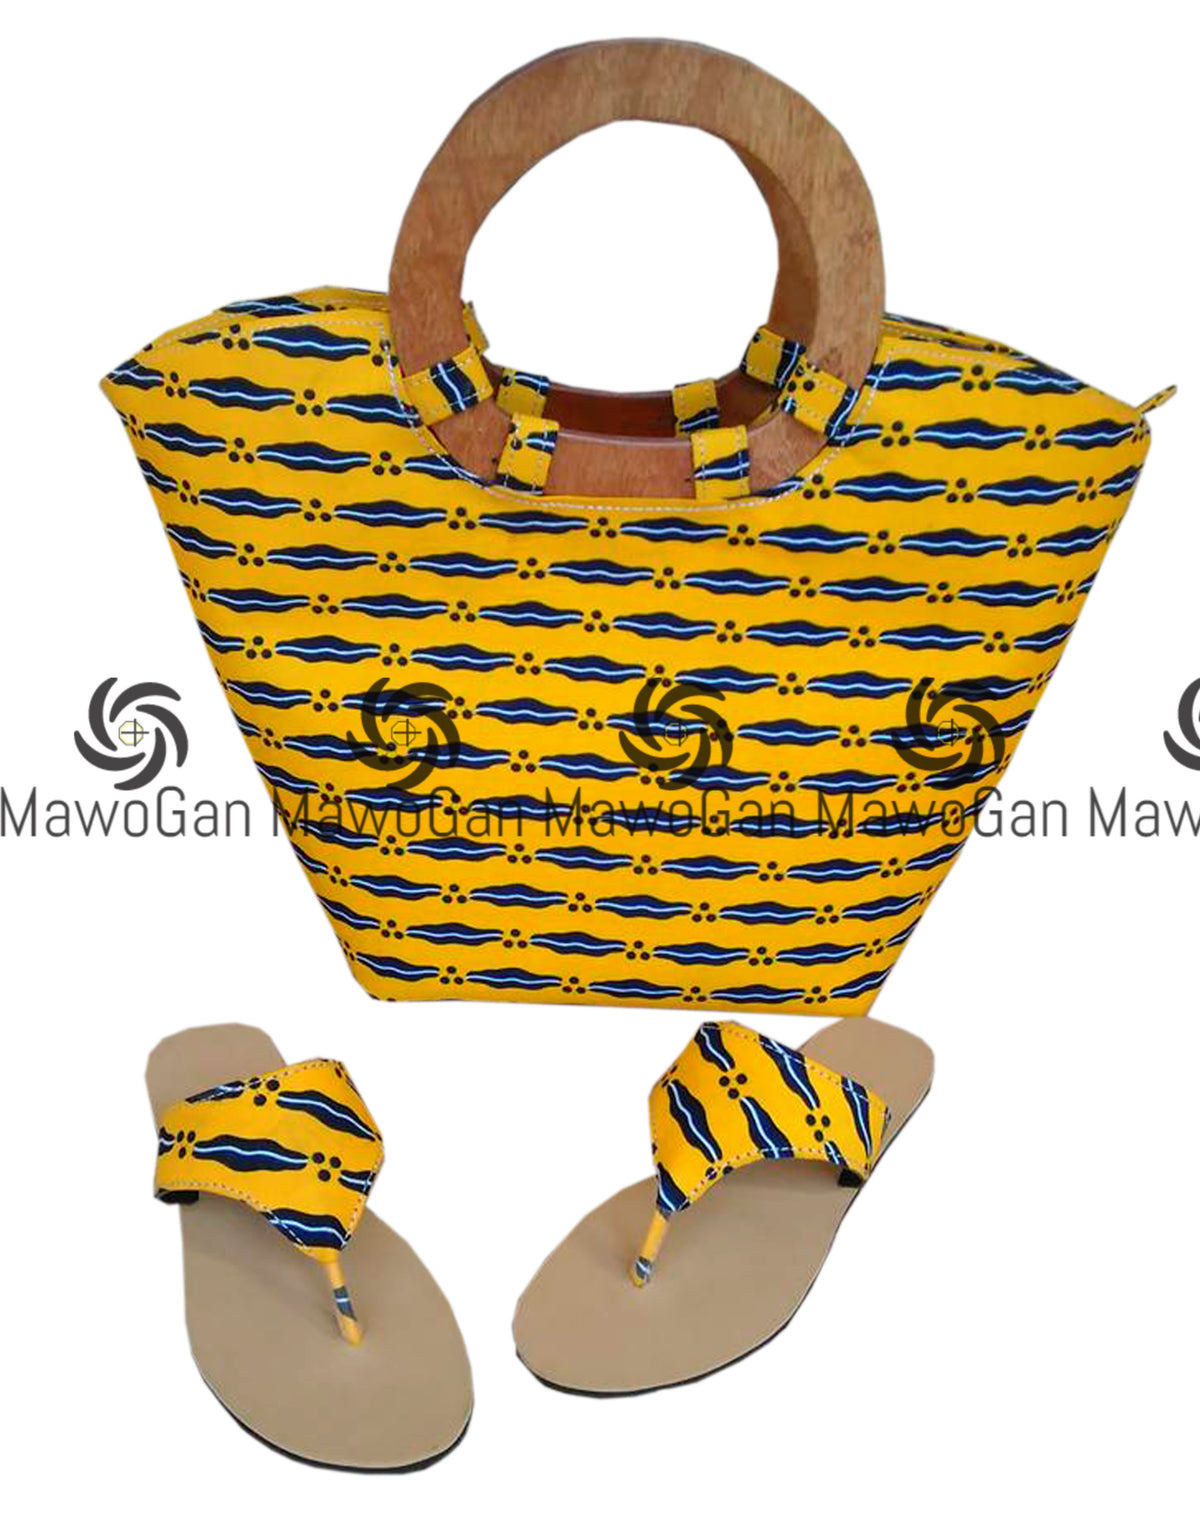 Handbag tote, Wax print, printed tote, African fabric handbag, Blue tote bag, African printed bag, unique bag, printed tote,